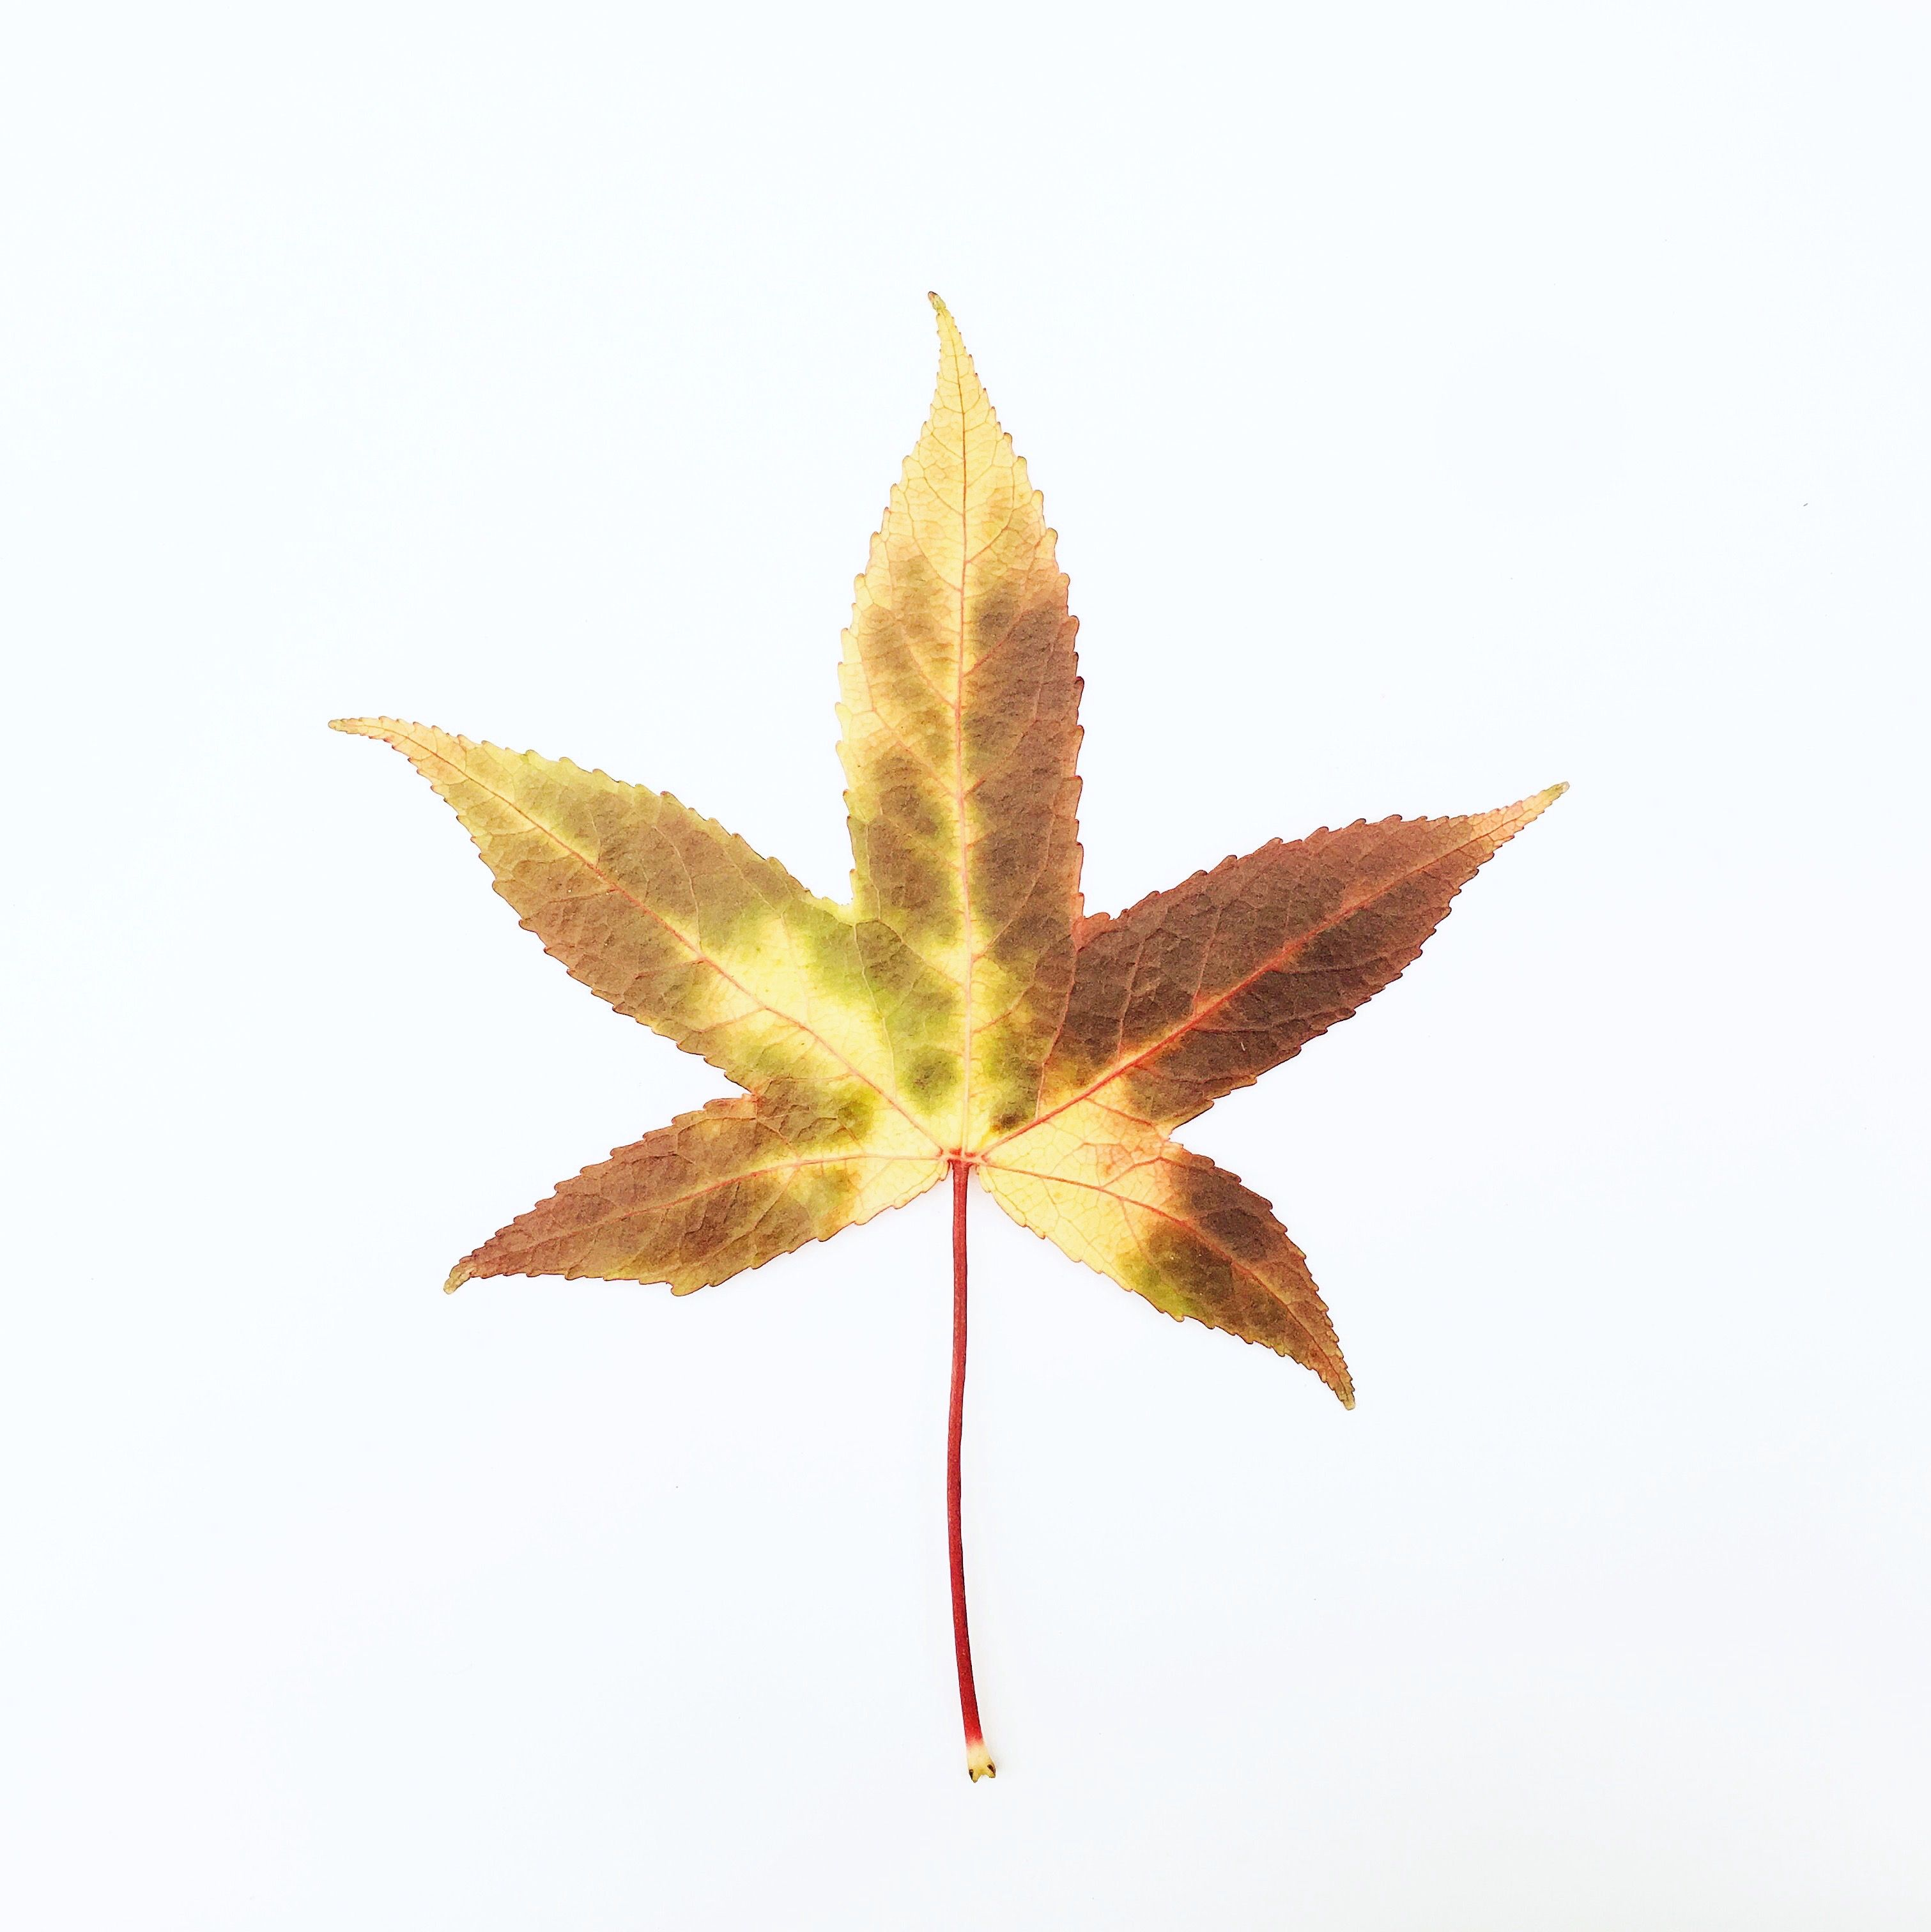 Leaf 6 Of The 1 000 Autumn Leaves Project Showcasing Sweet Gum